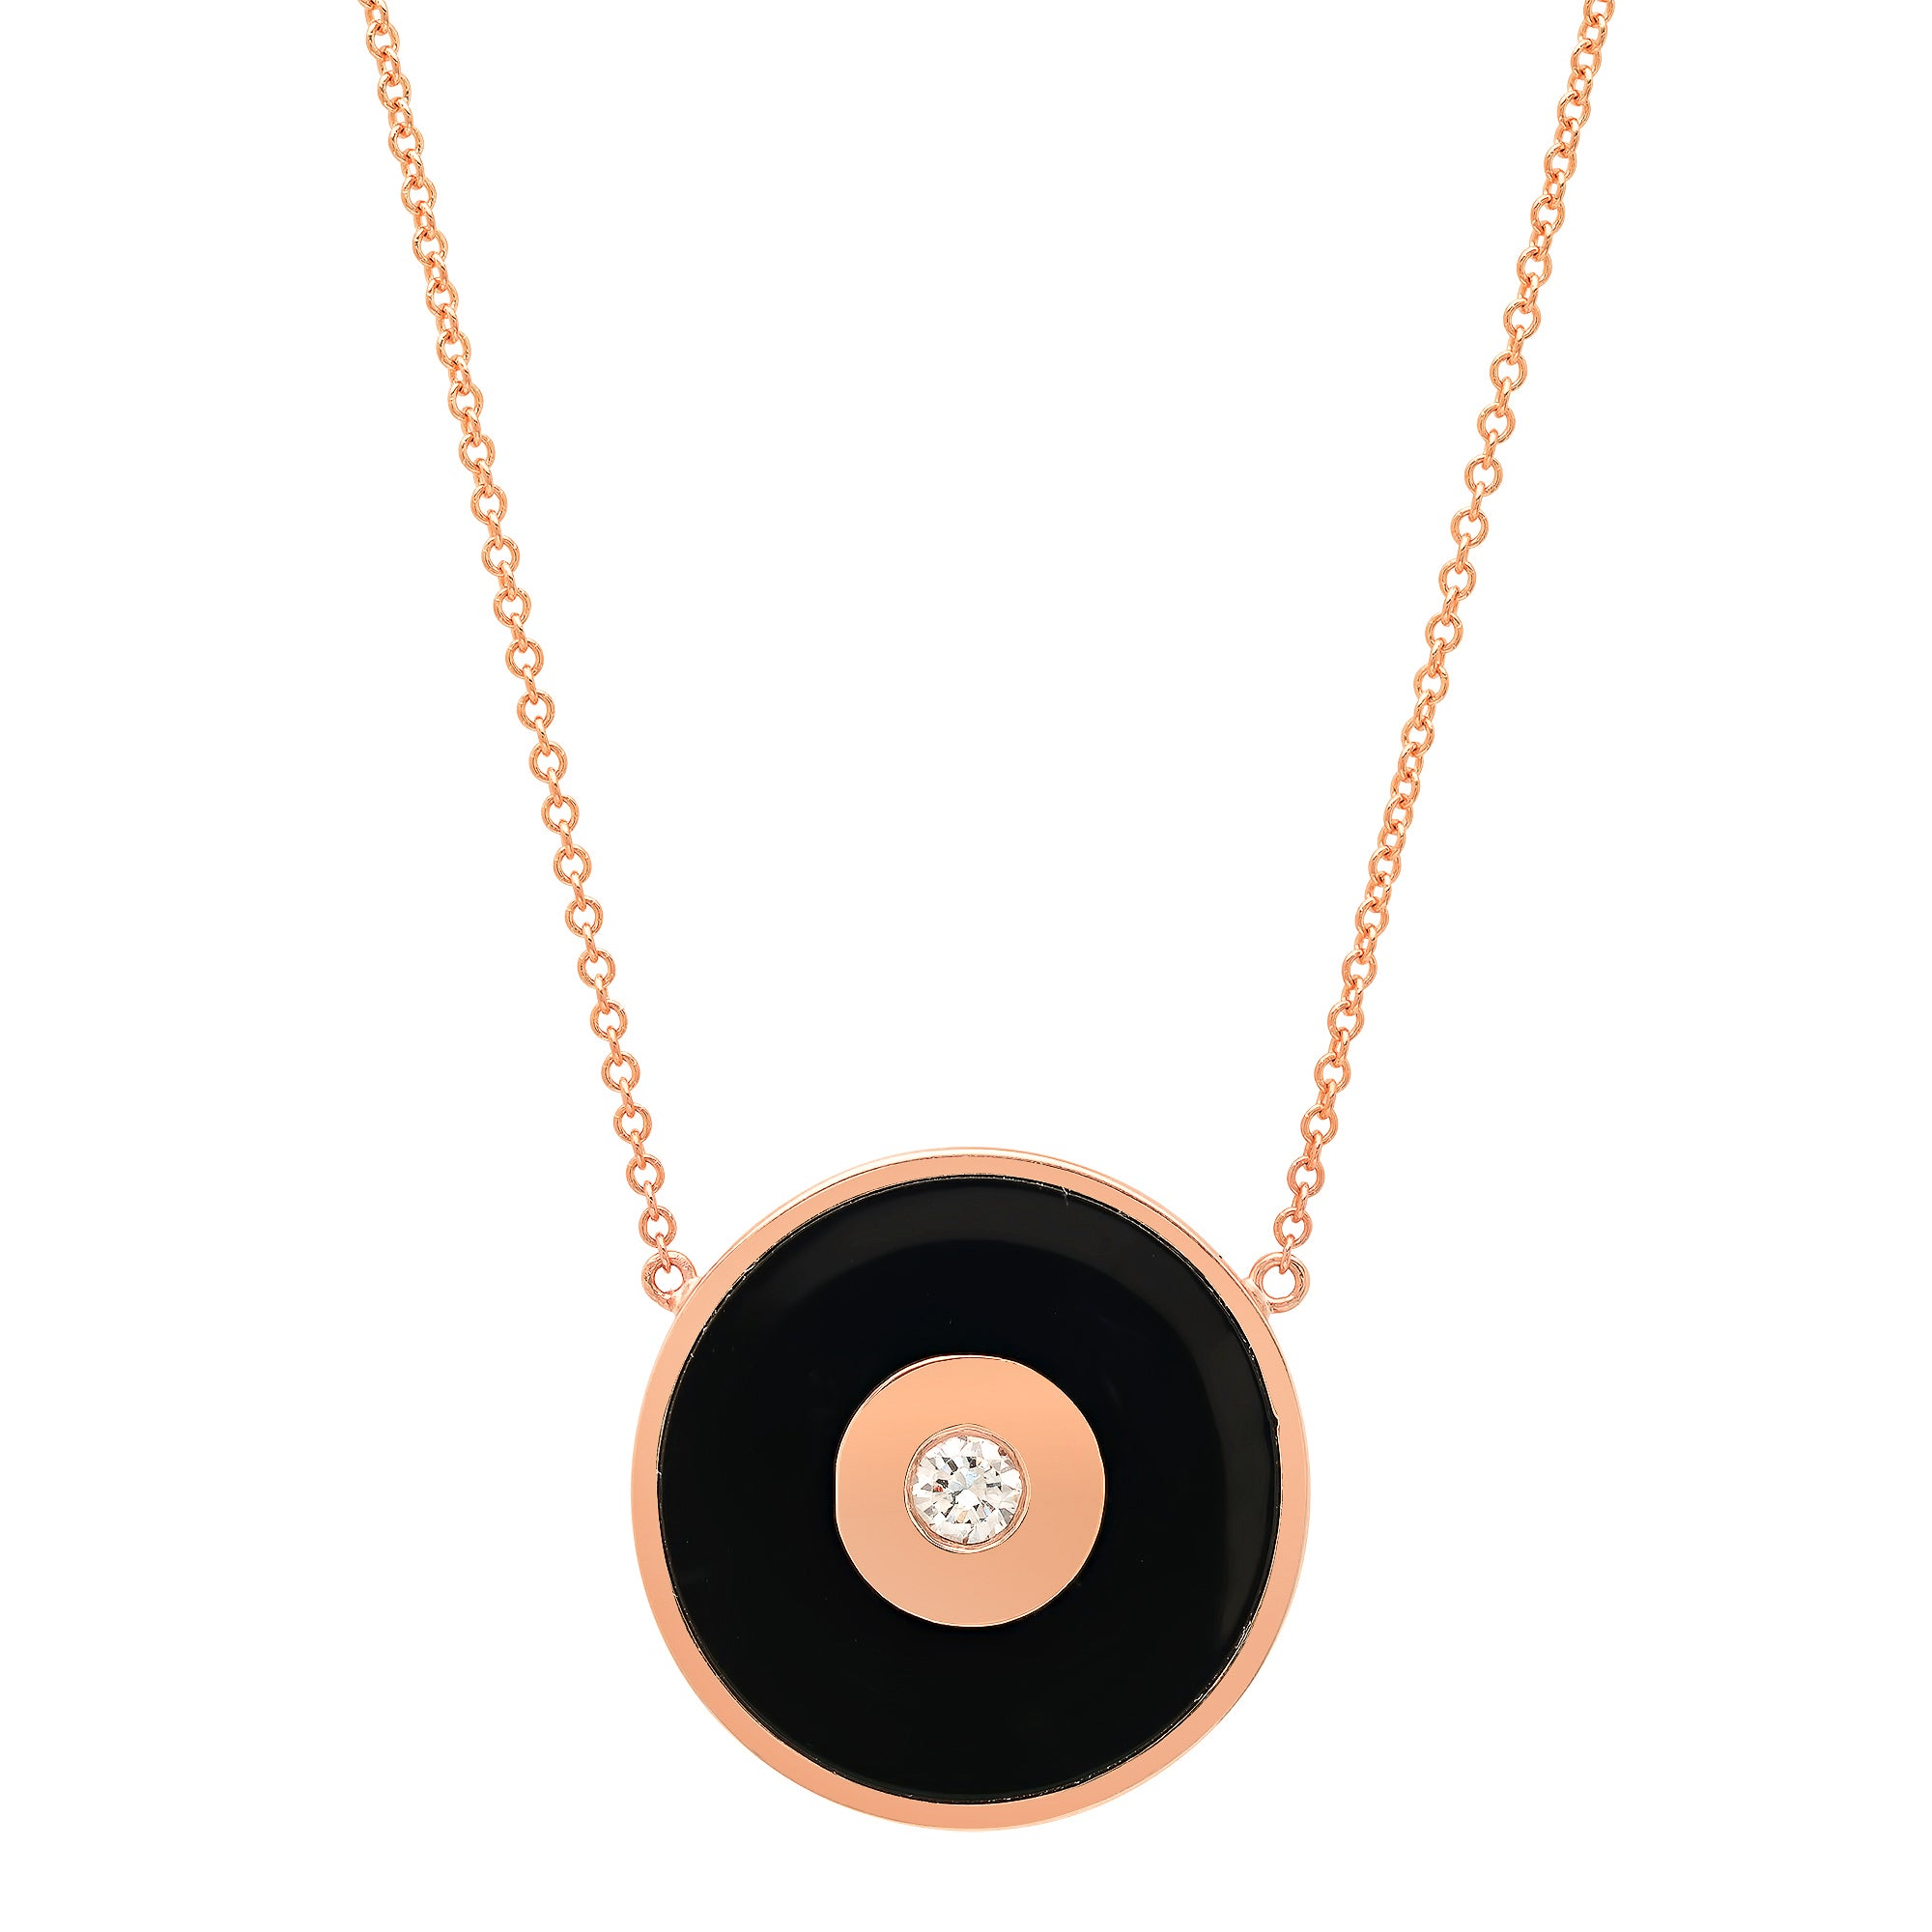 Black Enamel Evil Eye Disc Necklace with Diamond Center